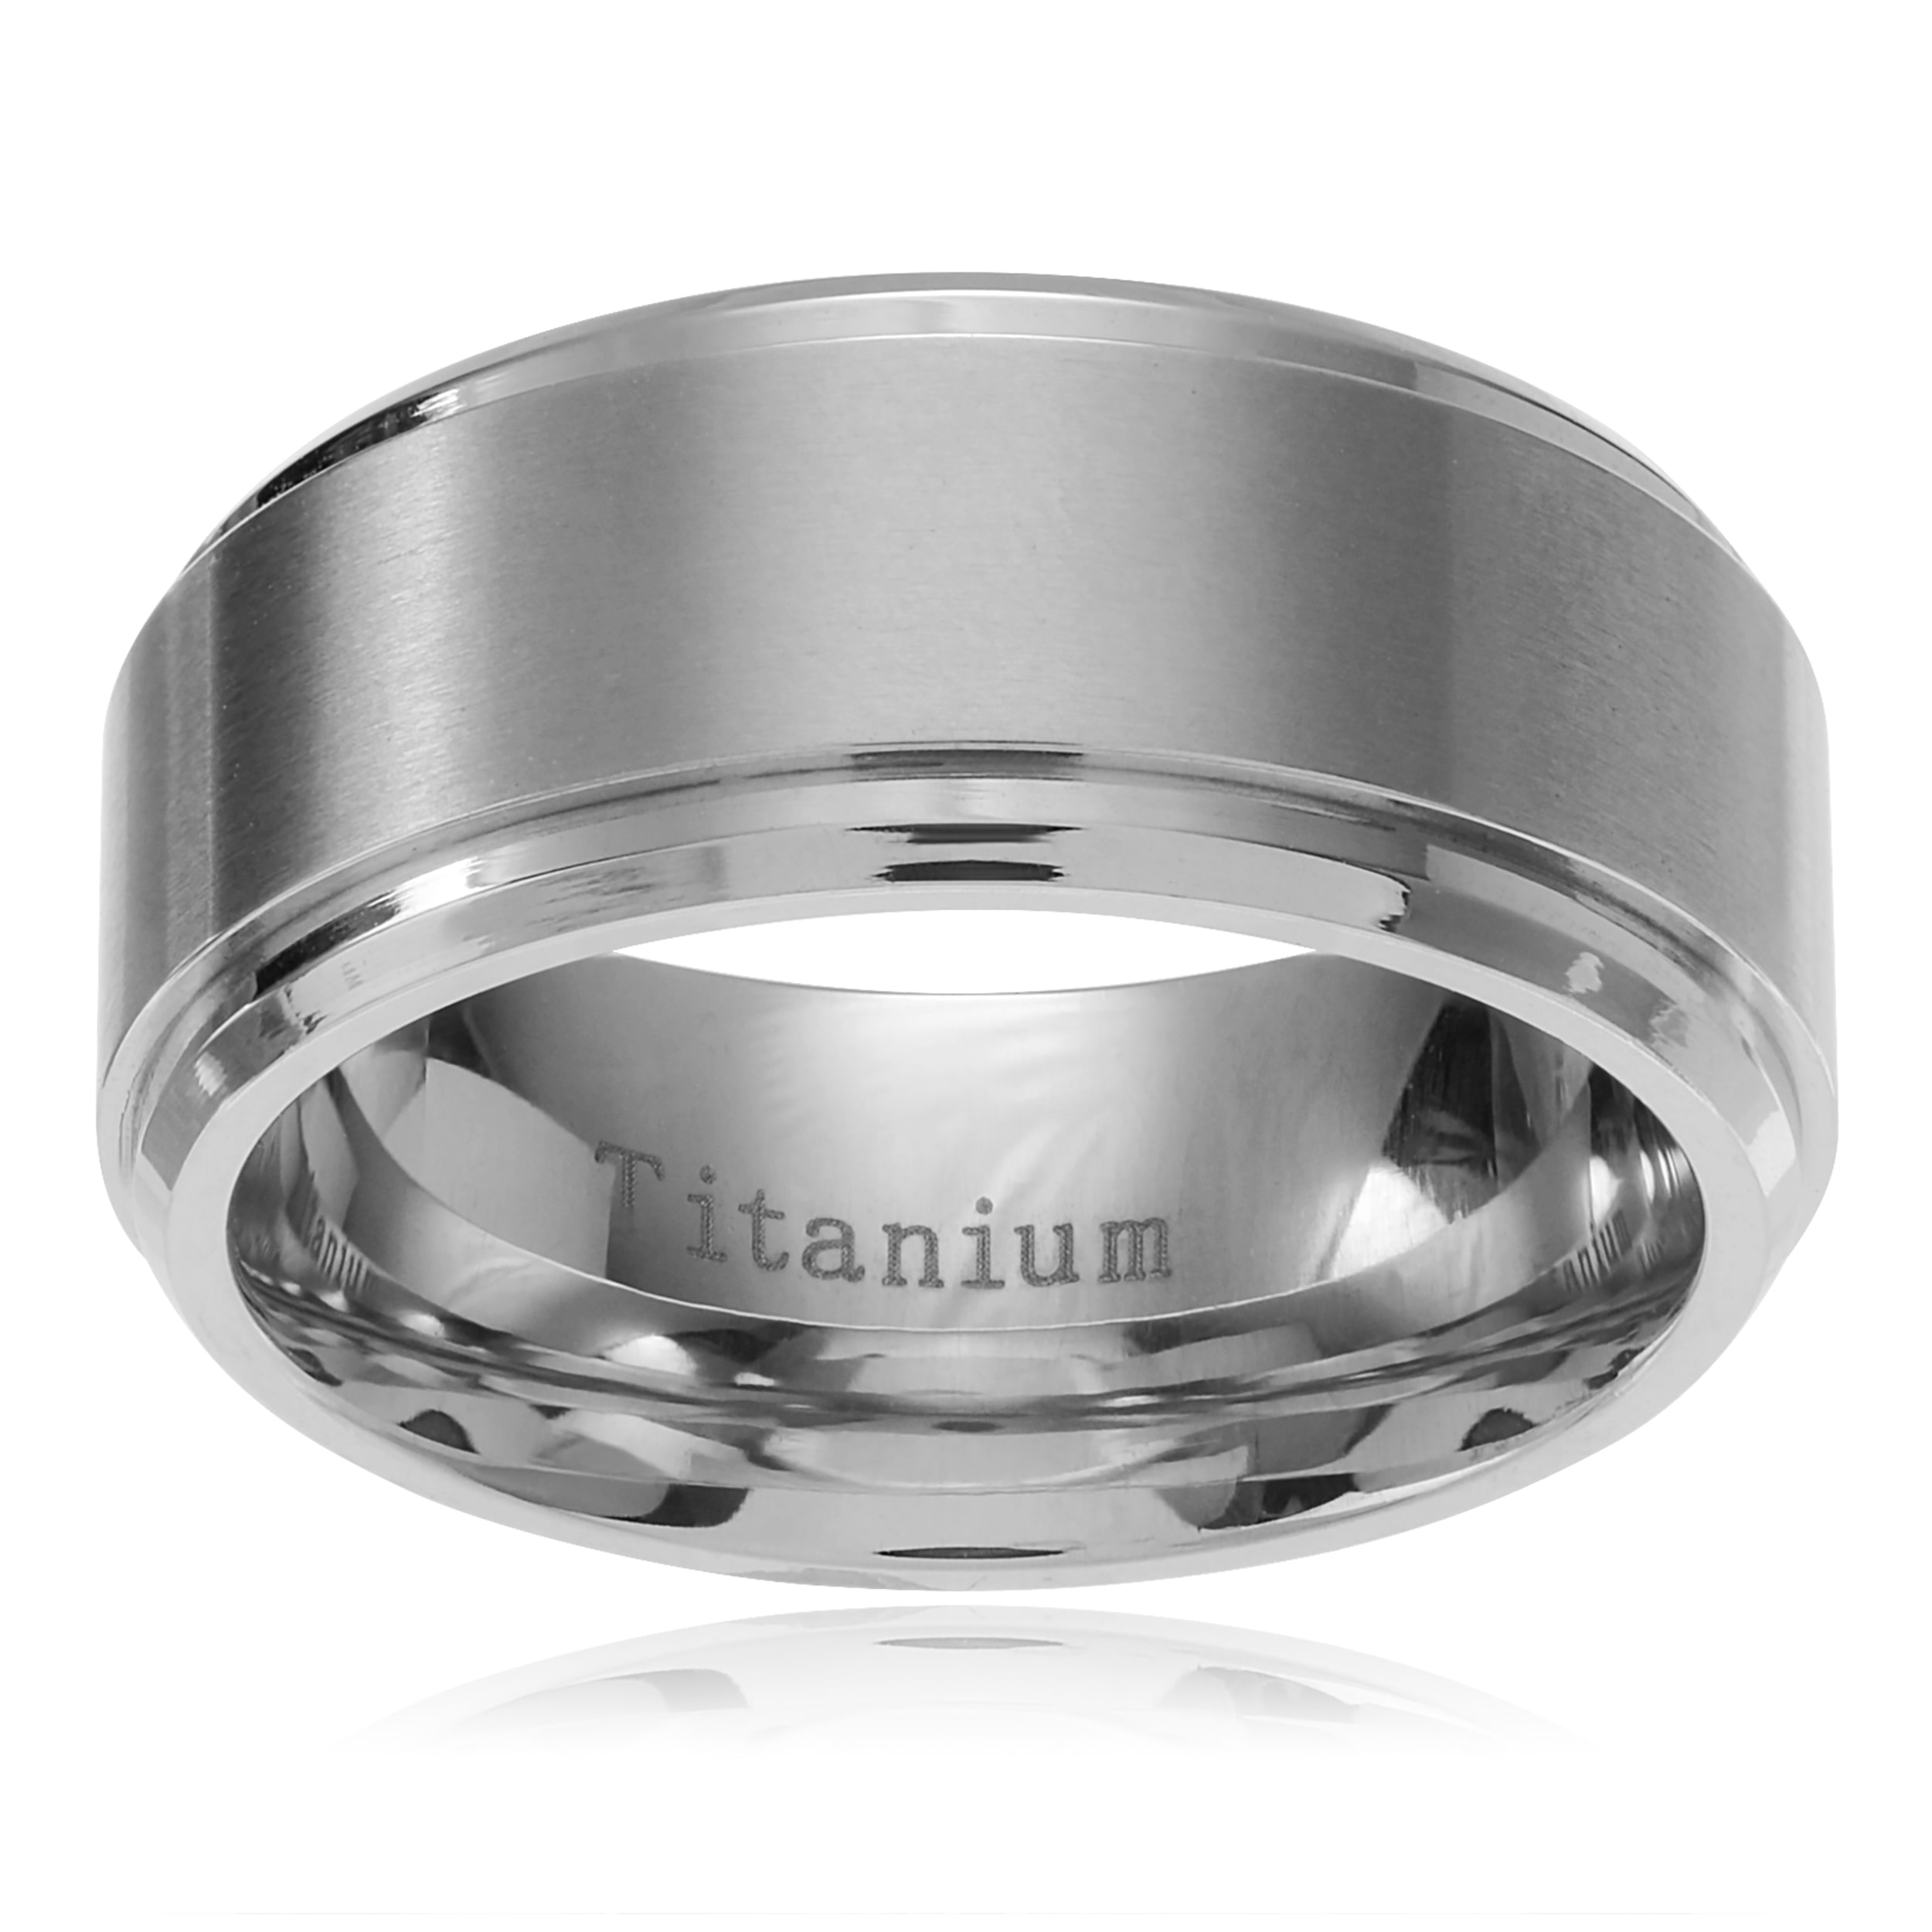 Territory Men's Titanium Brushed Center Beveled Edge Wedding Band (9mm) Size- 12